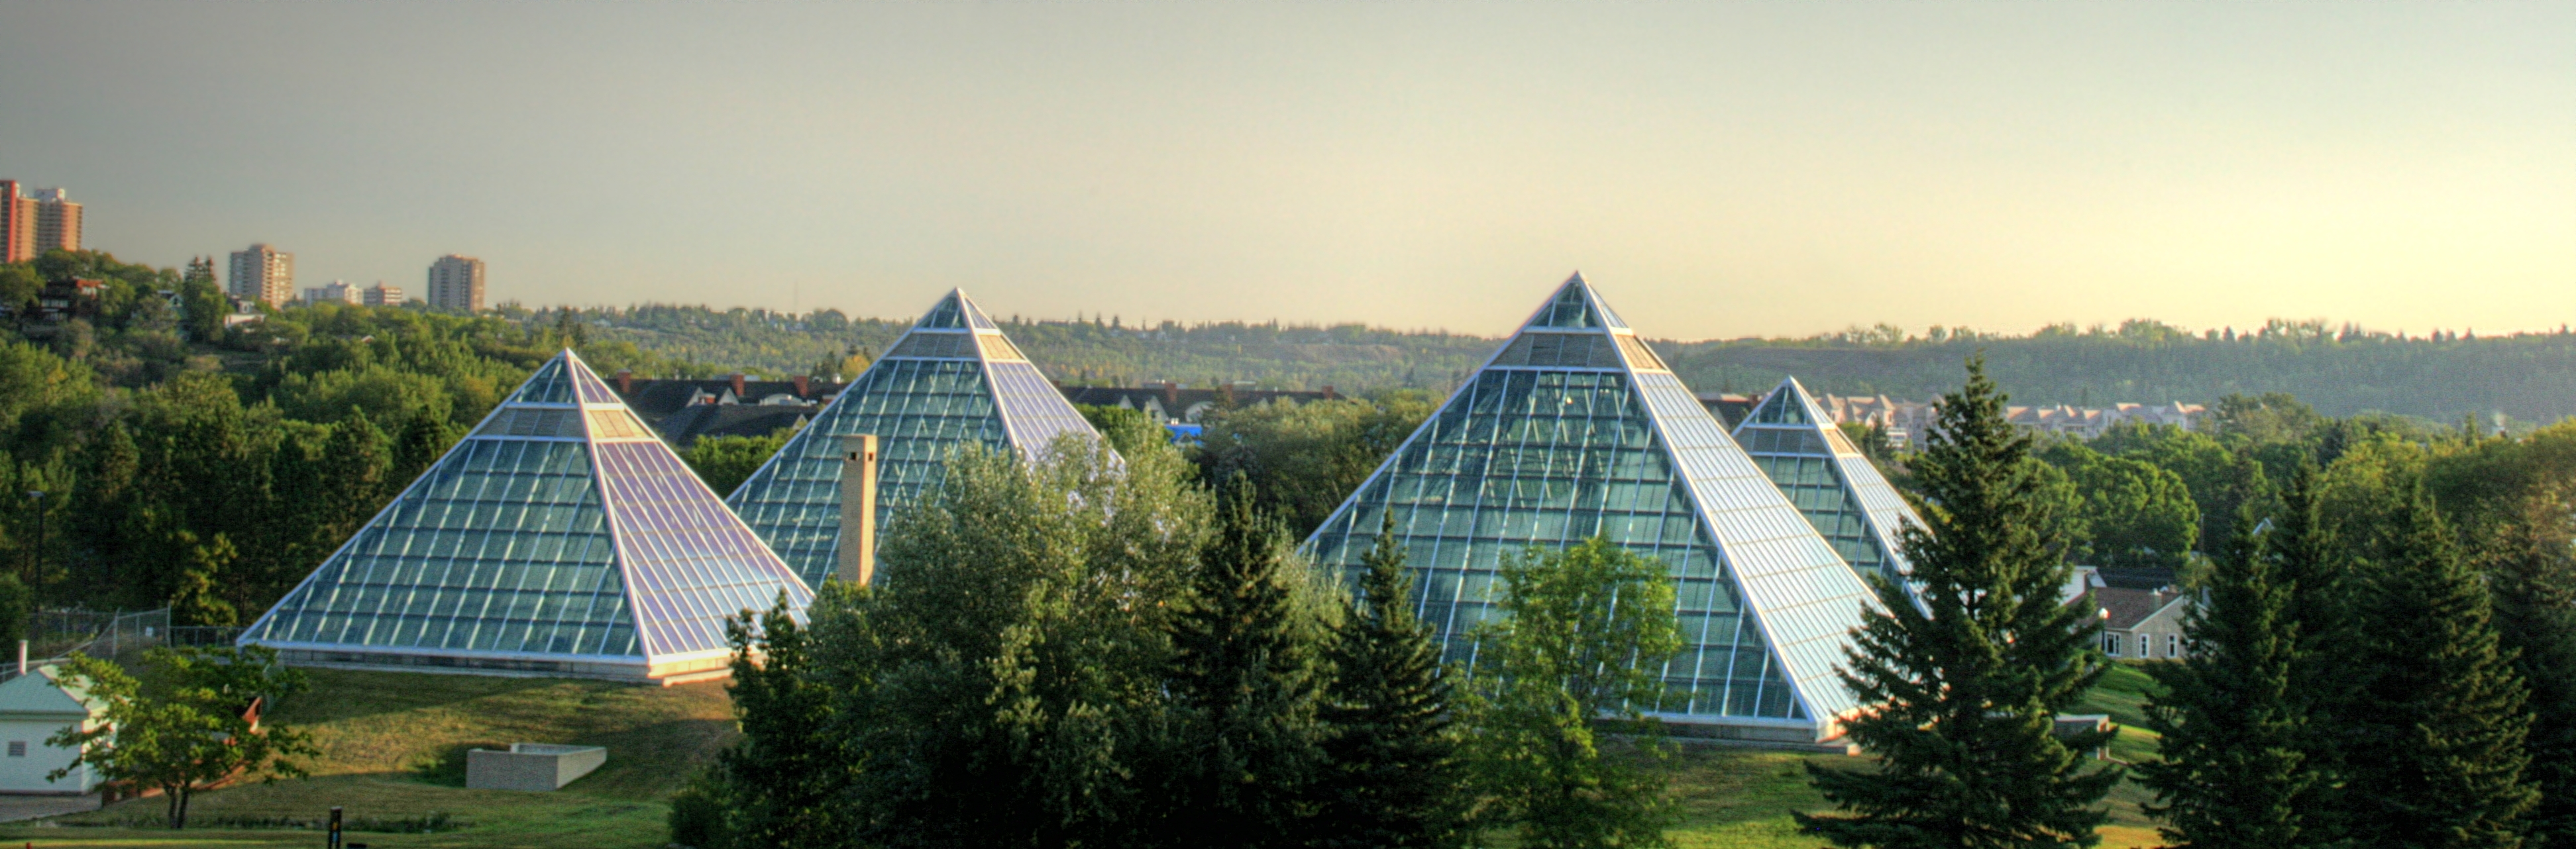 Muttart Conservatory, Things to do in Edmonton, Canada